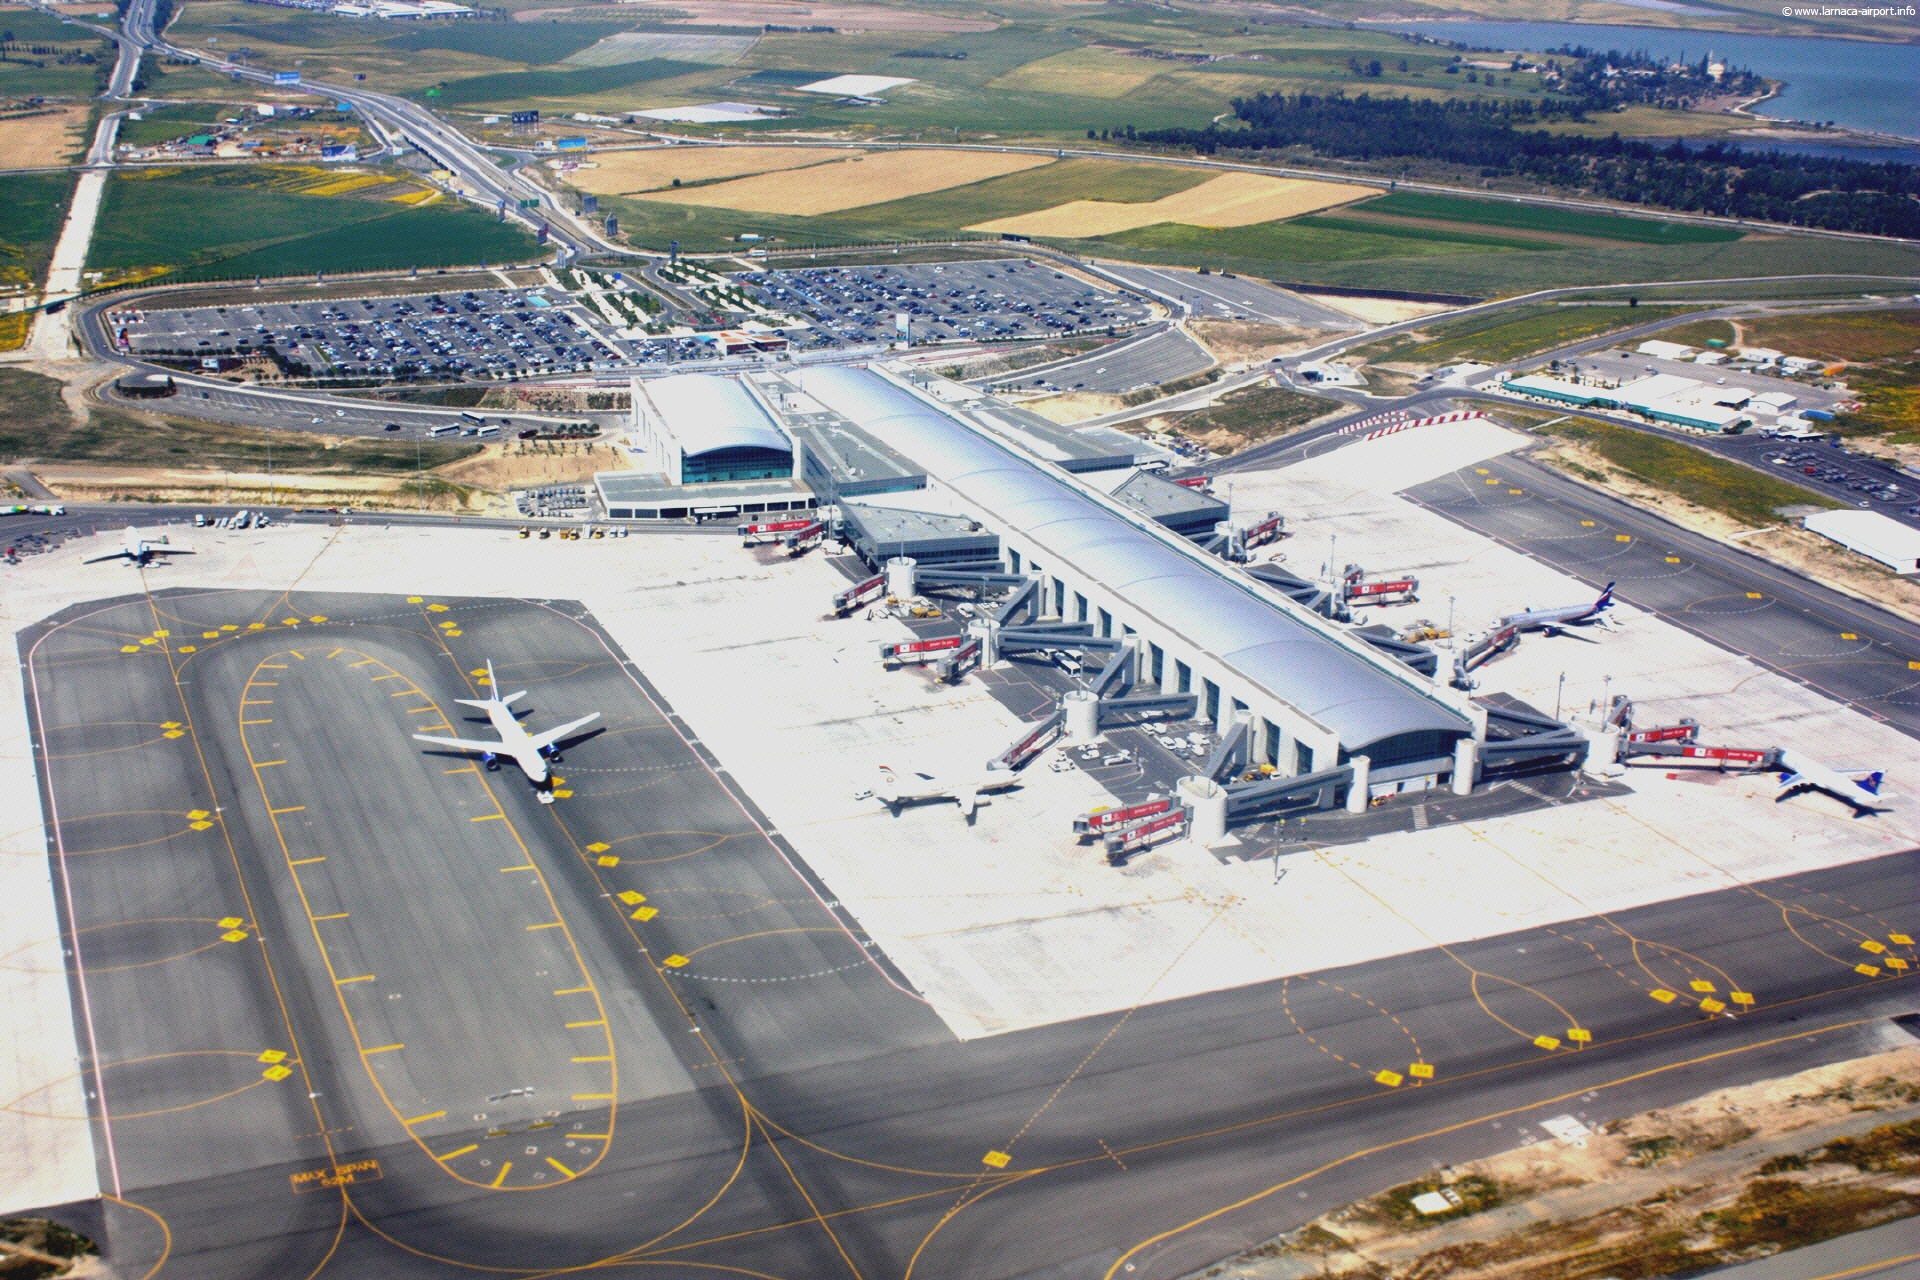 Airport at Bird Eye Panorama 589.42 Kb